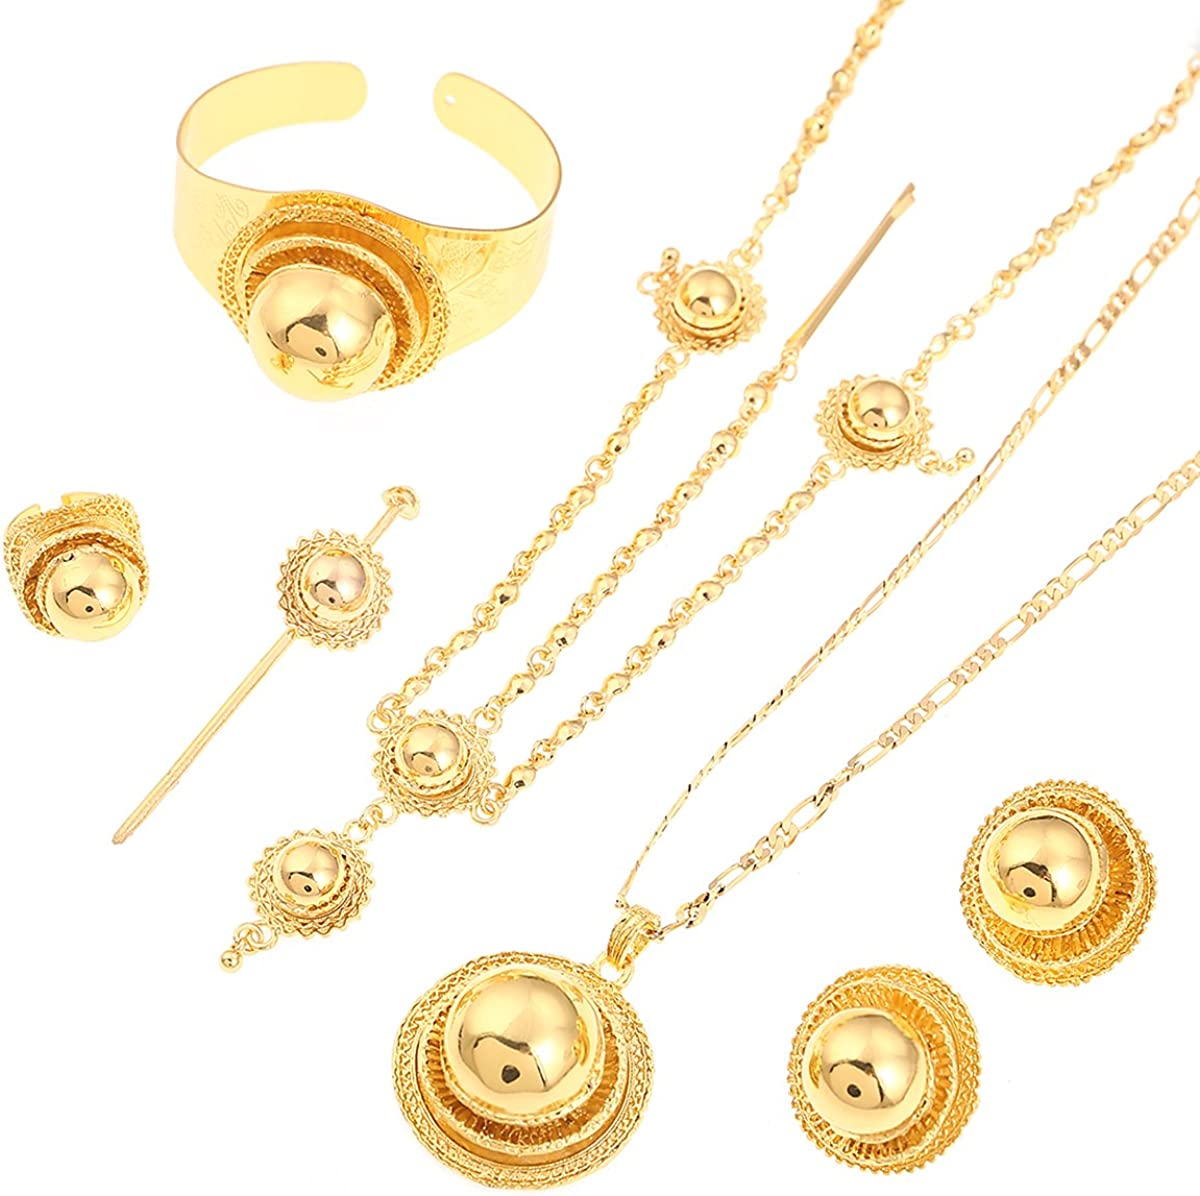 Ethiopian Bridal Jewelry Sets Big Hair Jewelry 6pcs Sets African Jewelry for Ethiopian